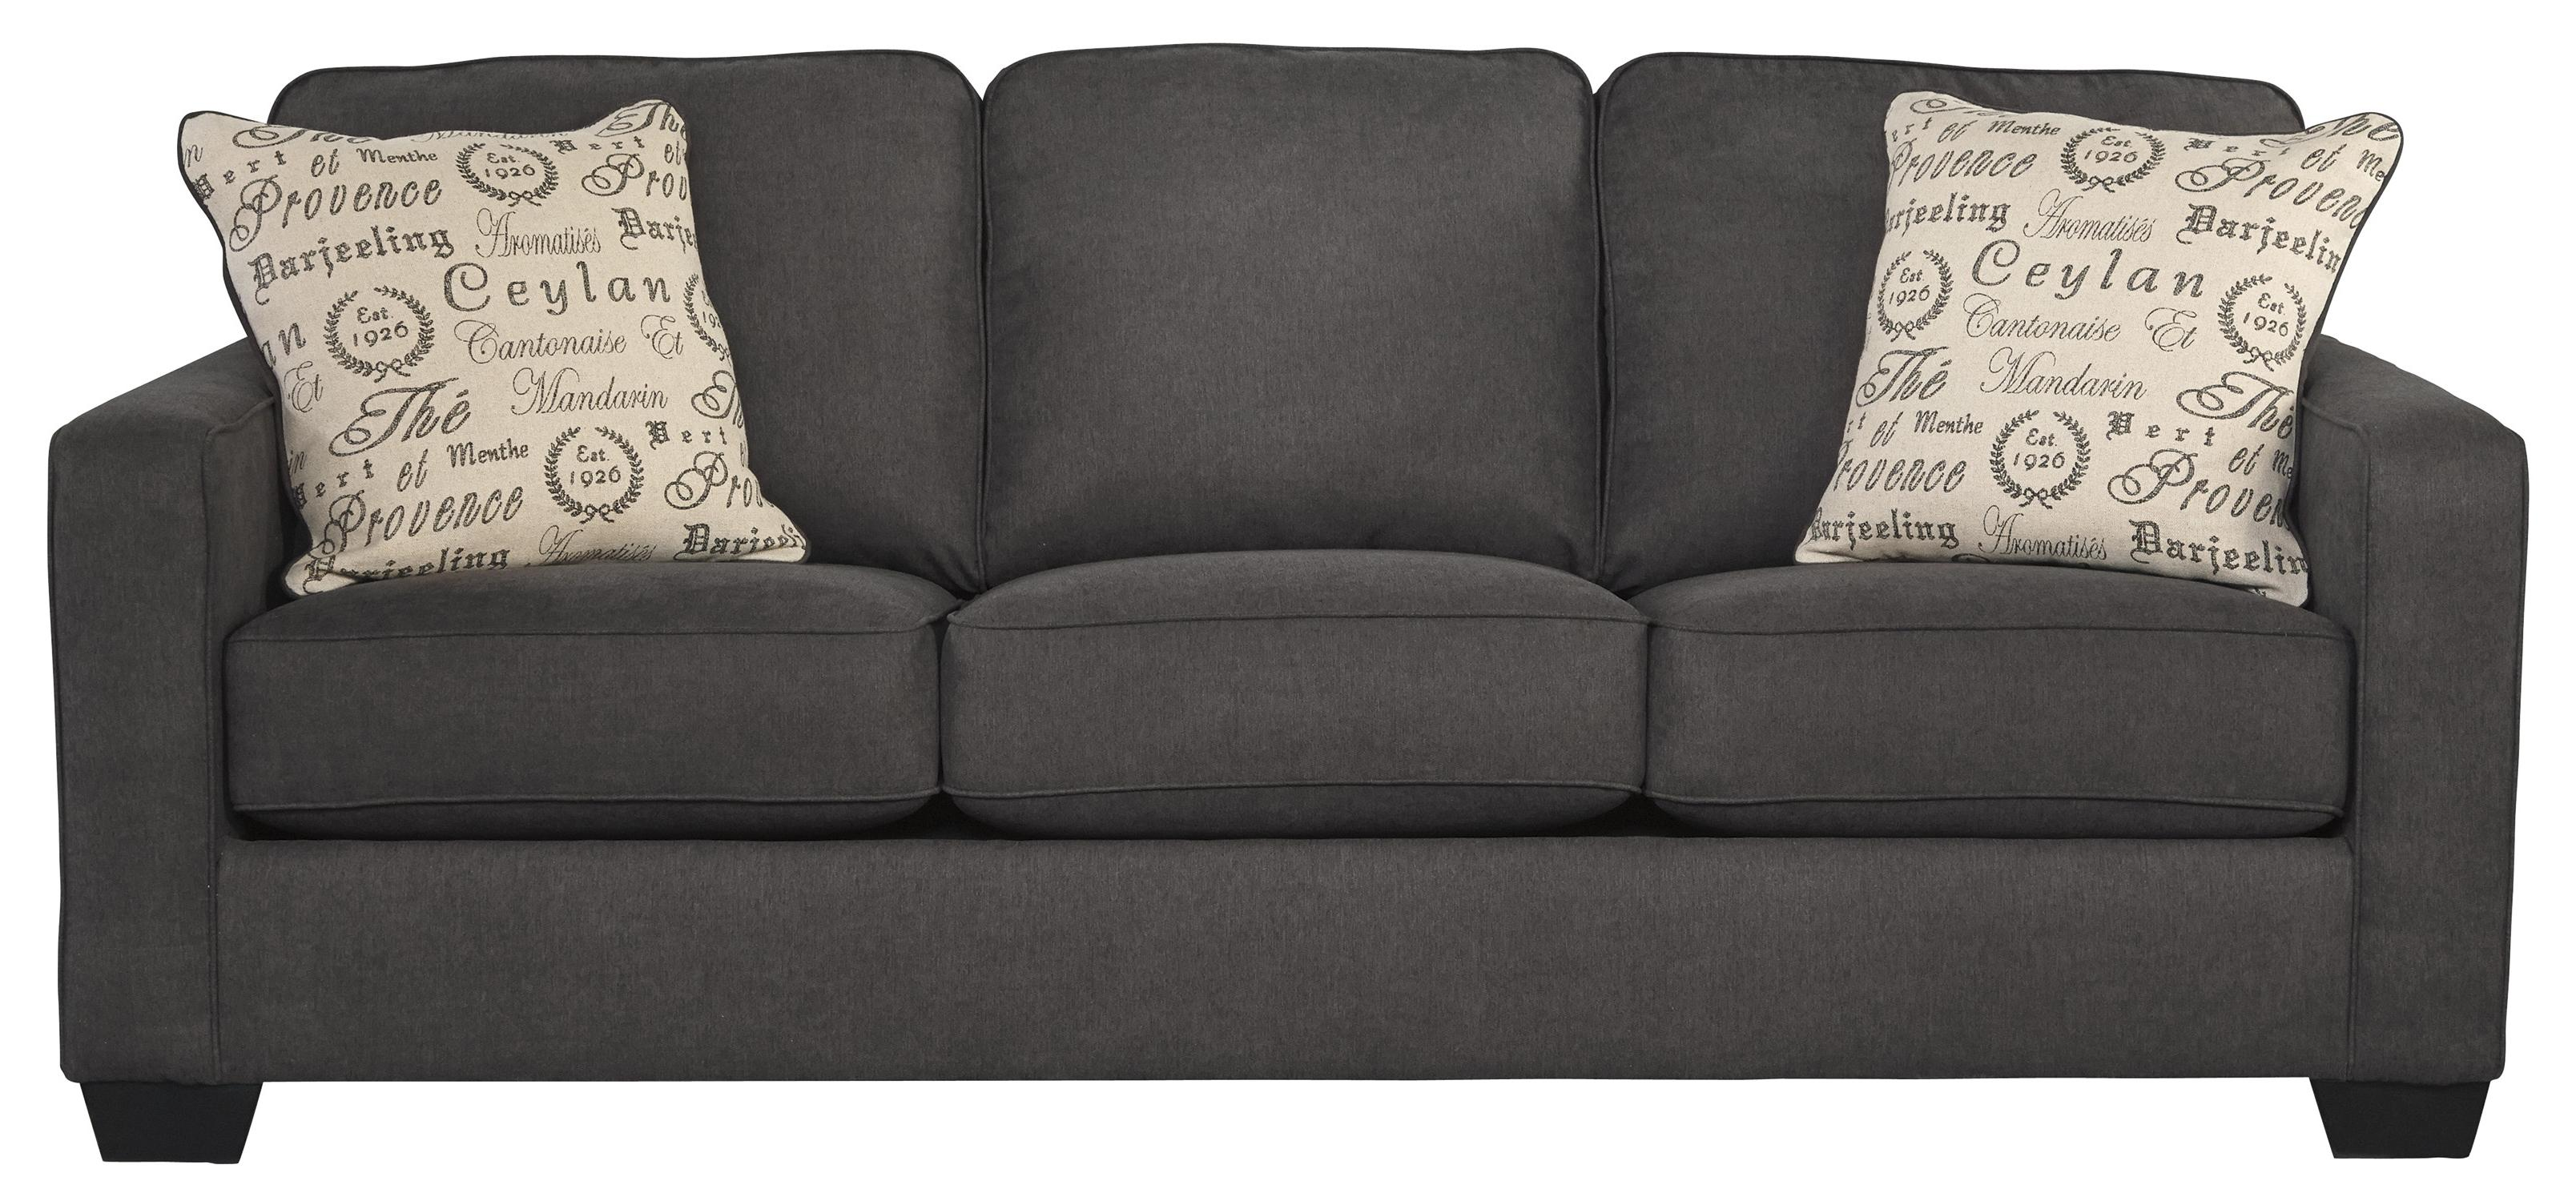 Signature Design By Ashley Alenya Charcoal 1660138 Contemporary Track Arm Sofa Zak S Warehouse Clearance Center Sofas